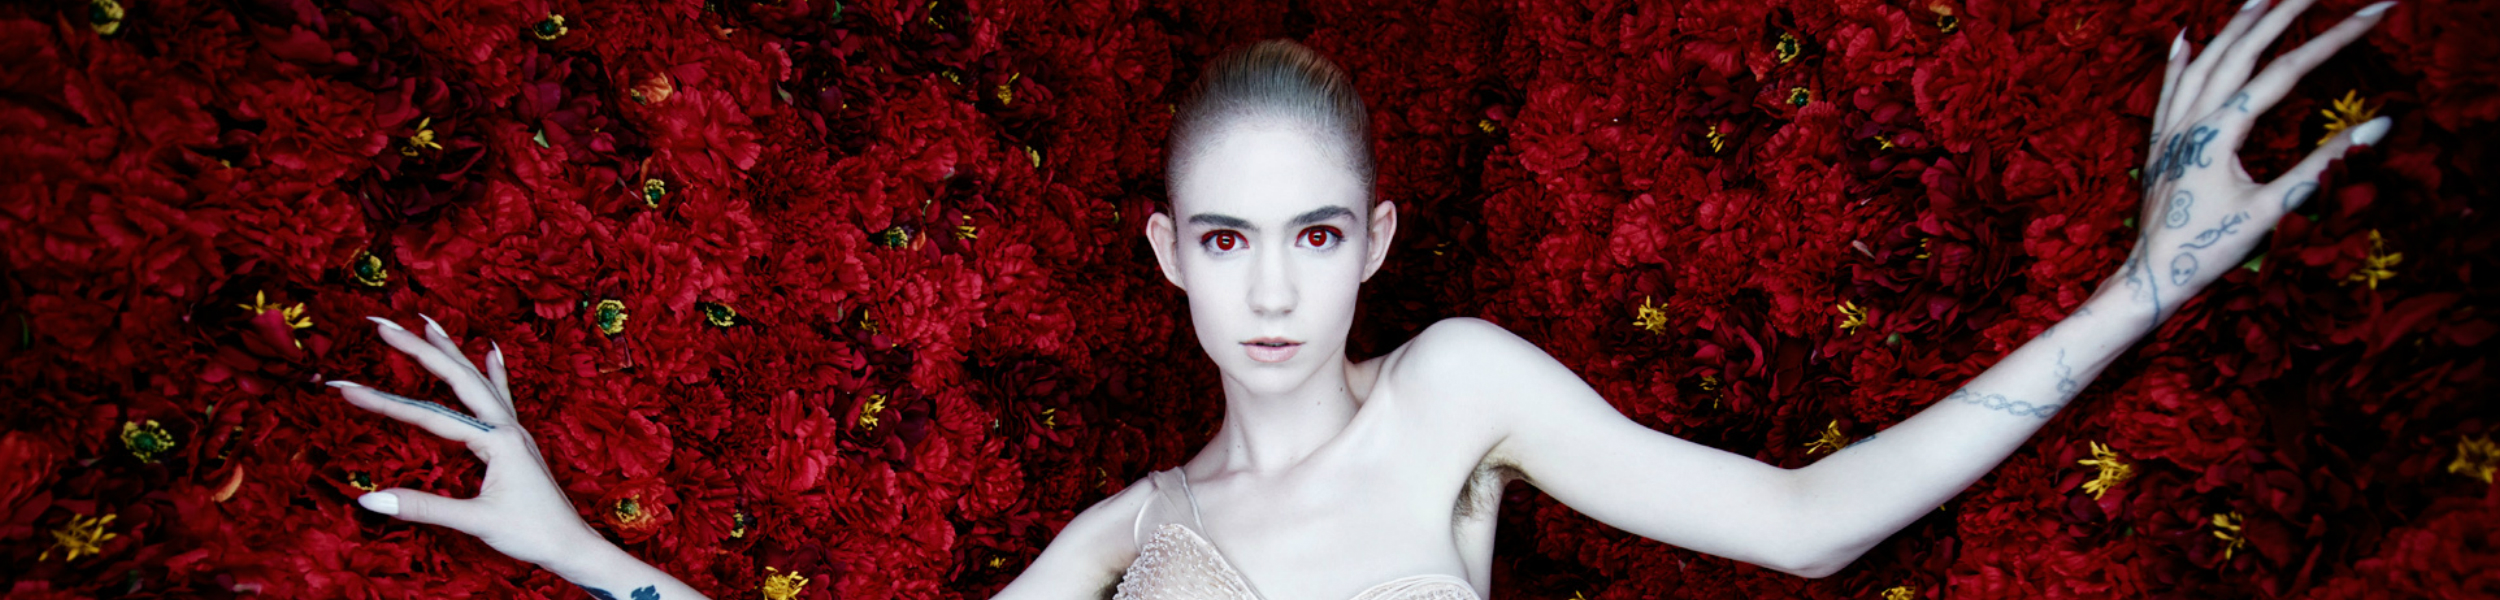 Grimes - Grimes Announces Mythical Gymnastics Tour, Watch MTV PUSH Session